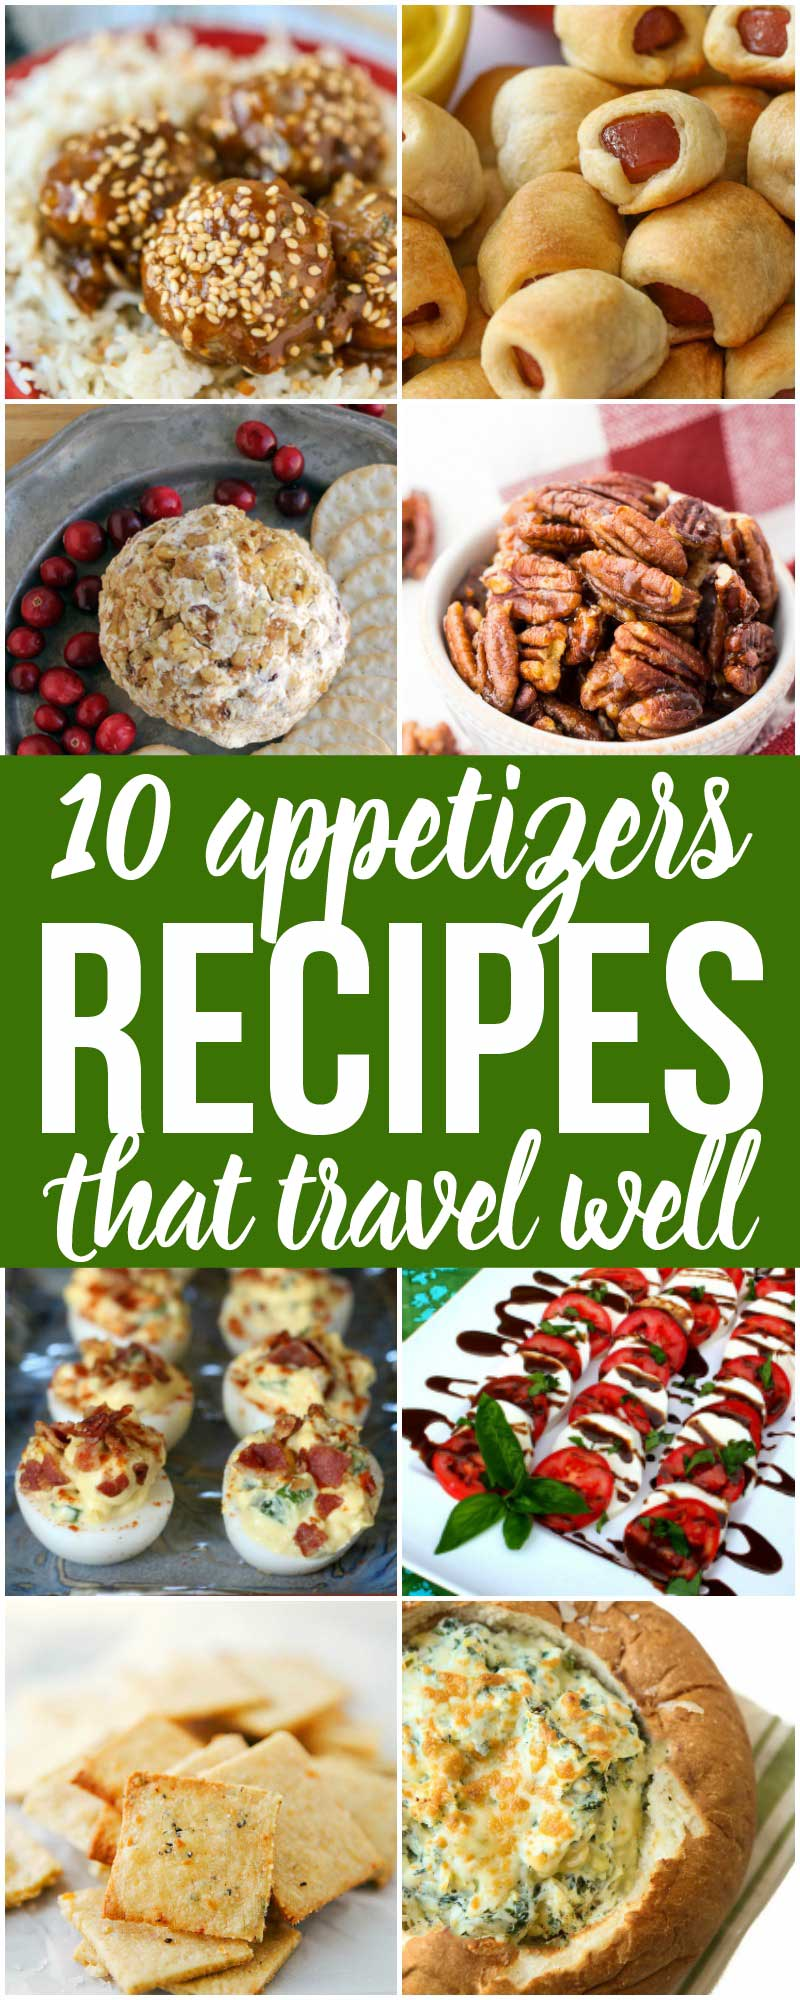 Traveling to a party or to visit family and friends this holiday season? Skip the crockpot in the trunk and go with one of these recipes that travel well instead. With everything from easy breakfast recipes to make ahead desserts, these dishes that travel well has something for everyone and every occasion.